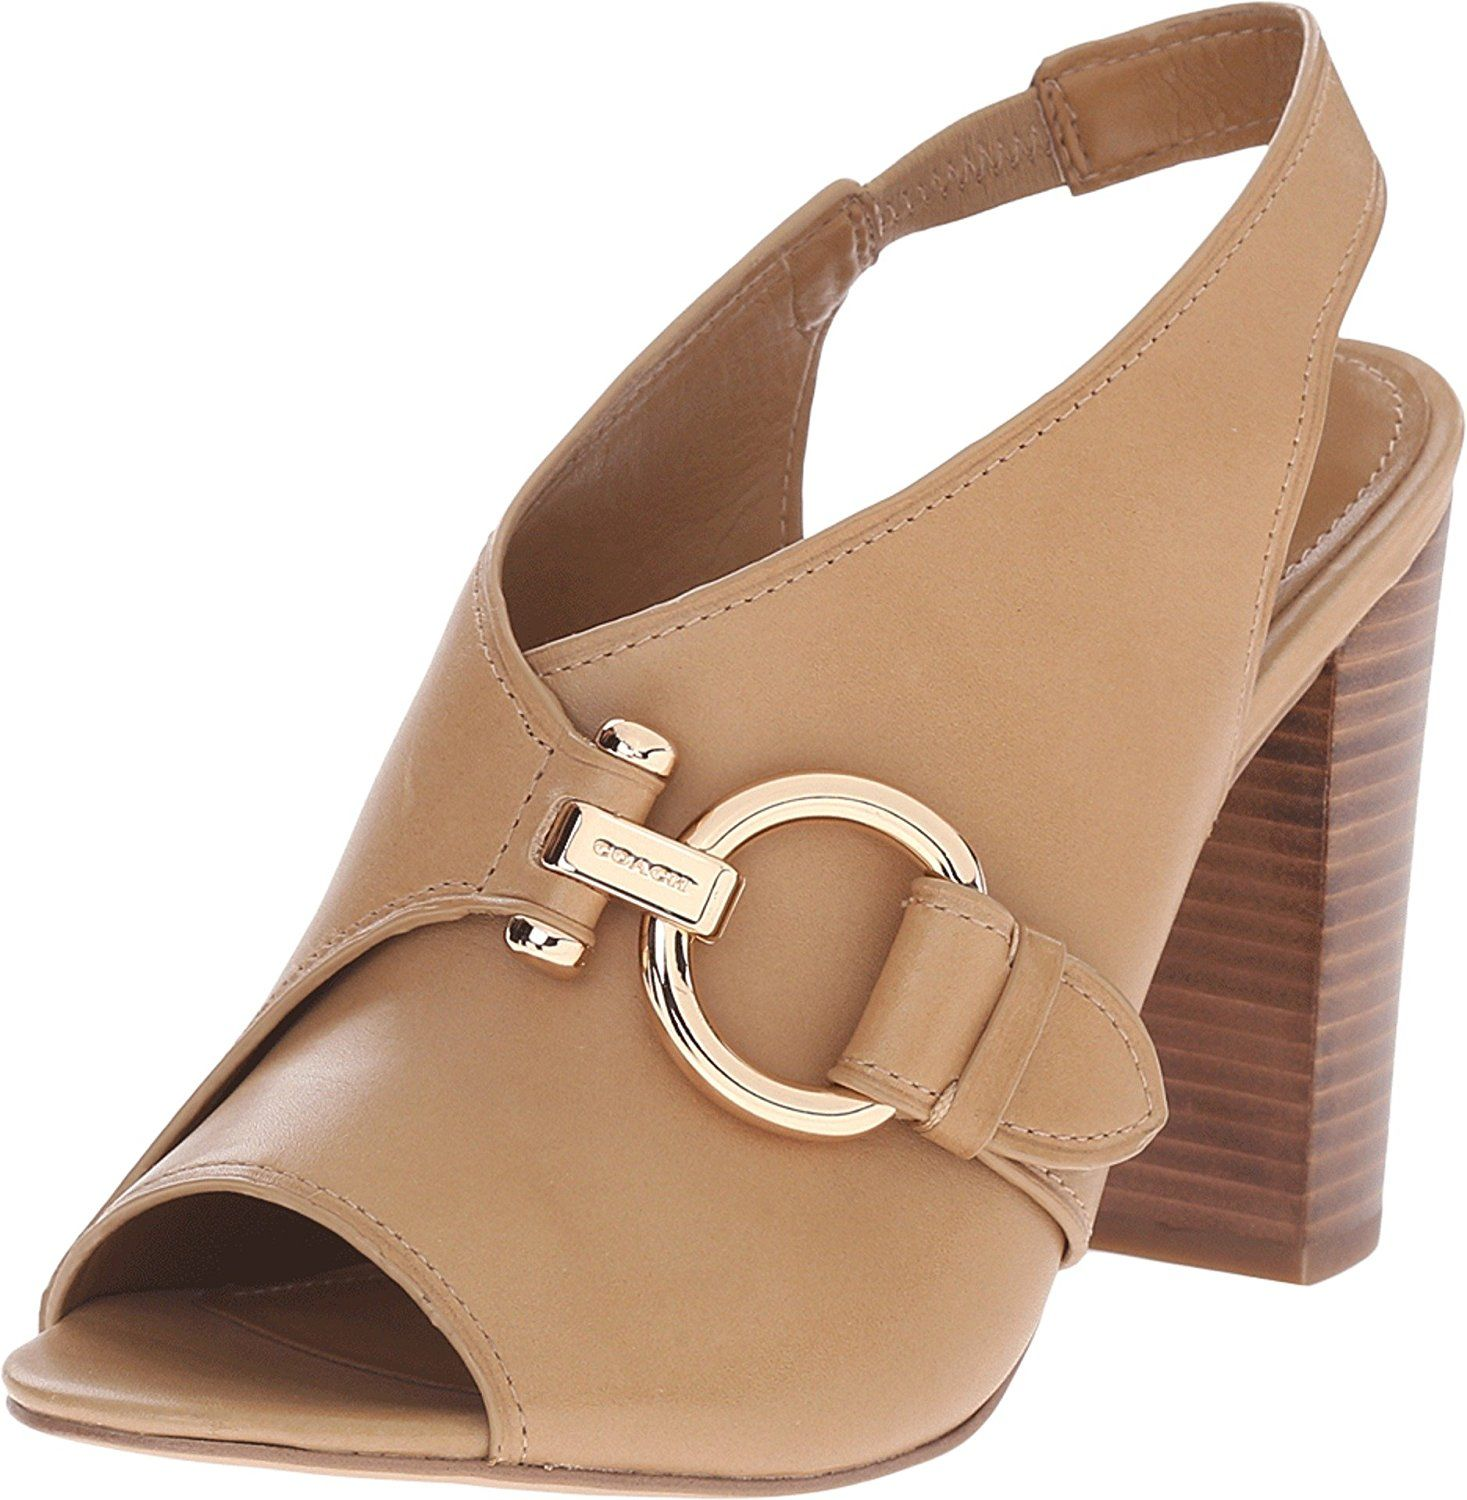 Womens Sandals COACH Sherry Nude